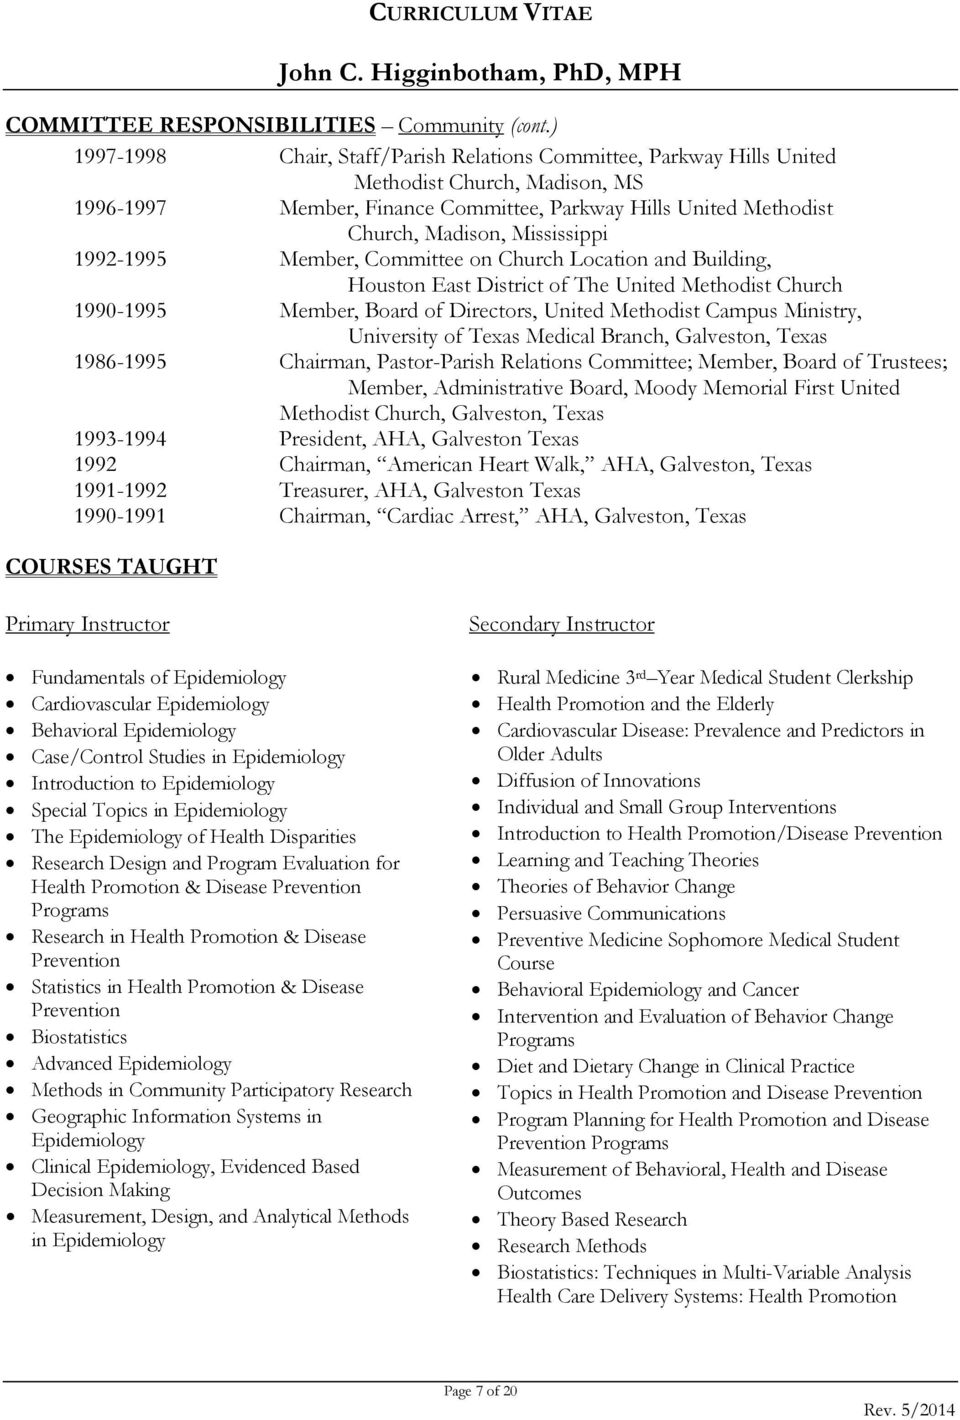 curriculum vitae john c higginbotham phd mph pdf mississippi 1992 1995 member committee on church location and building houston east district